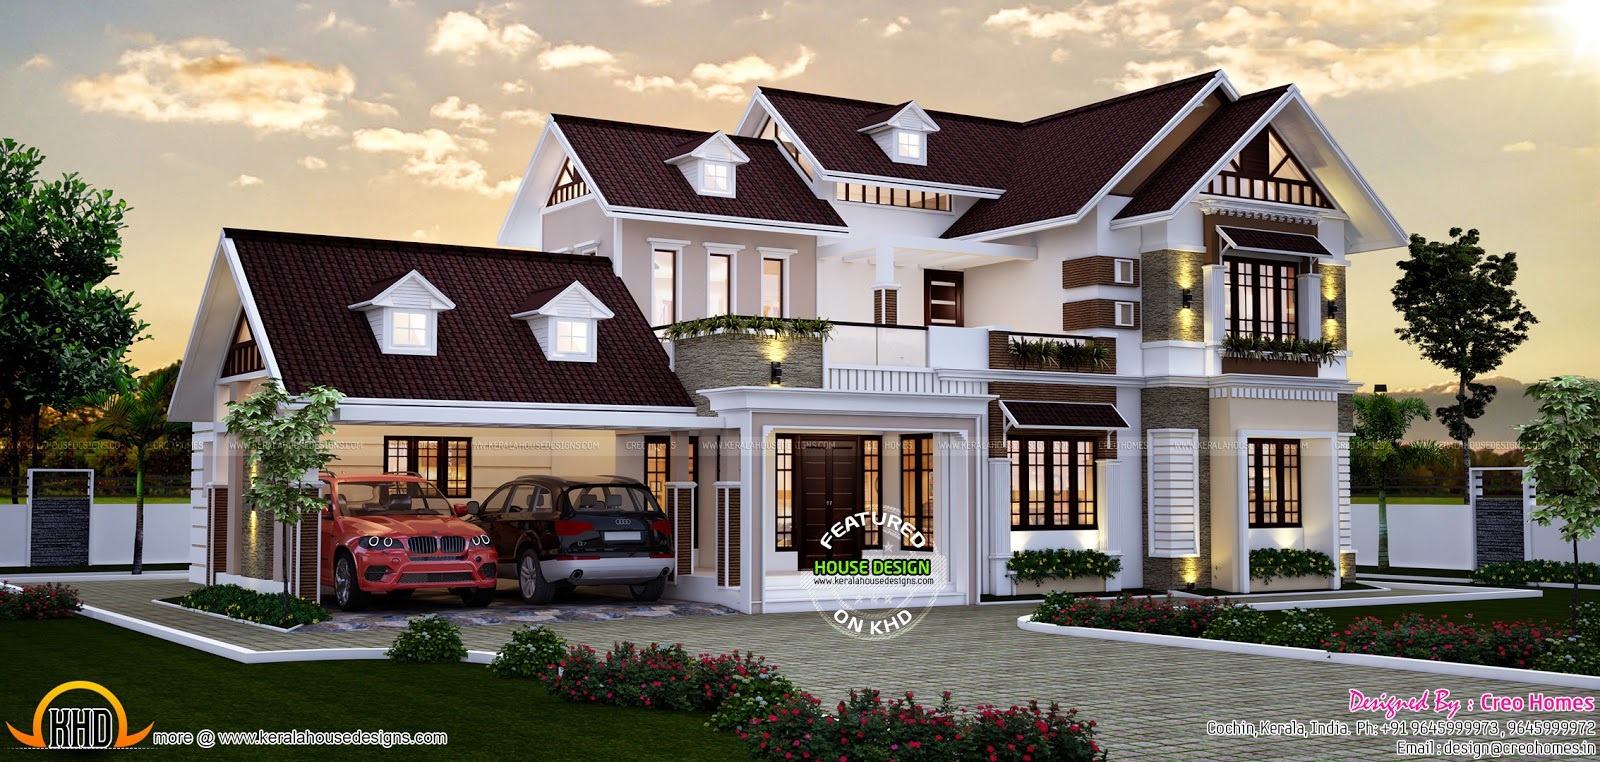 Elegant house designs home design and style for Elegant house plans photos